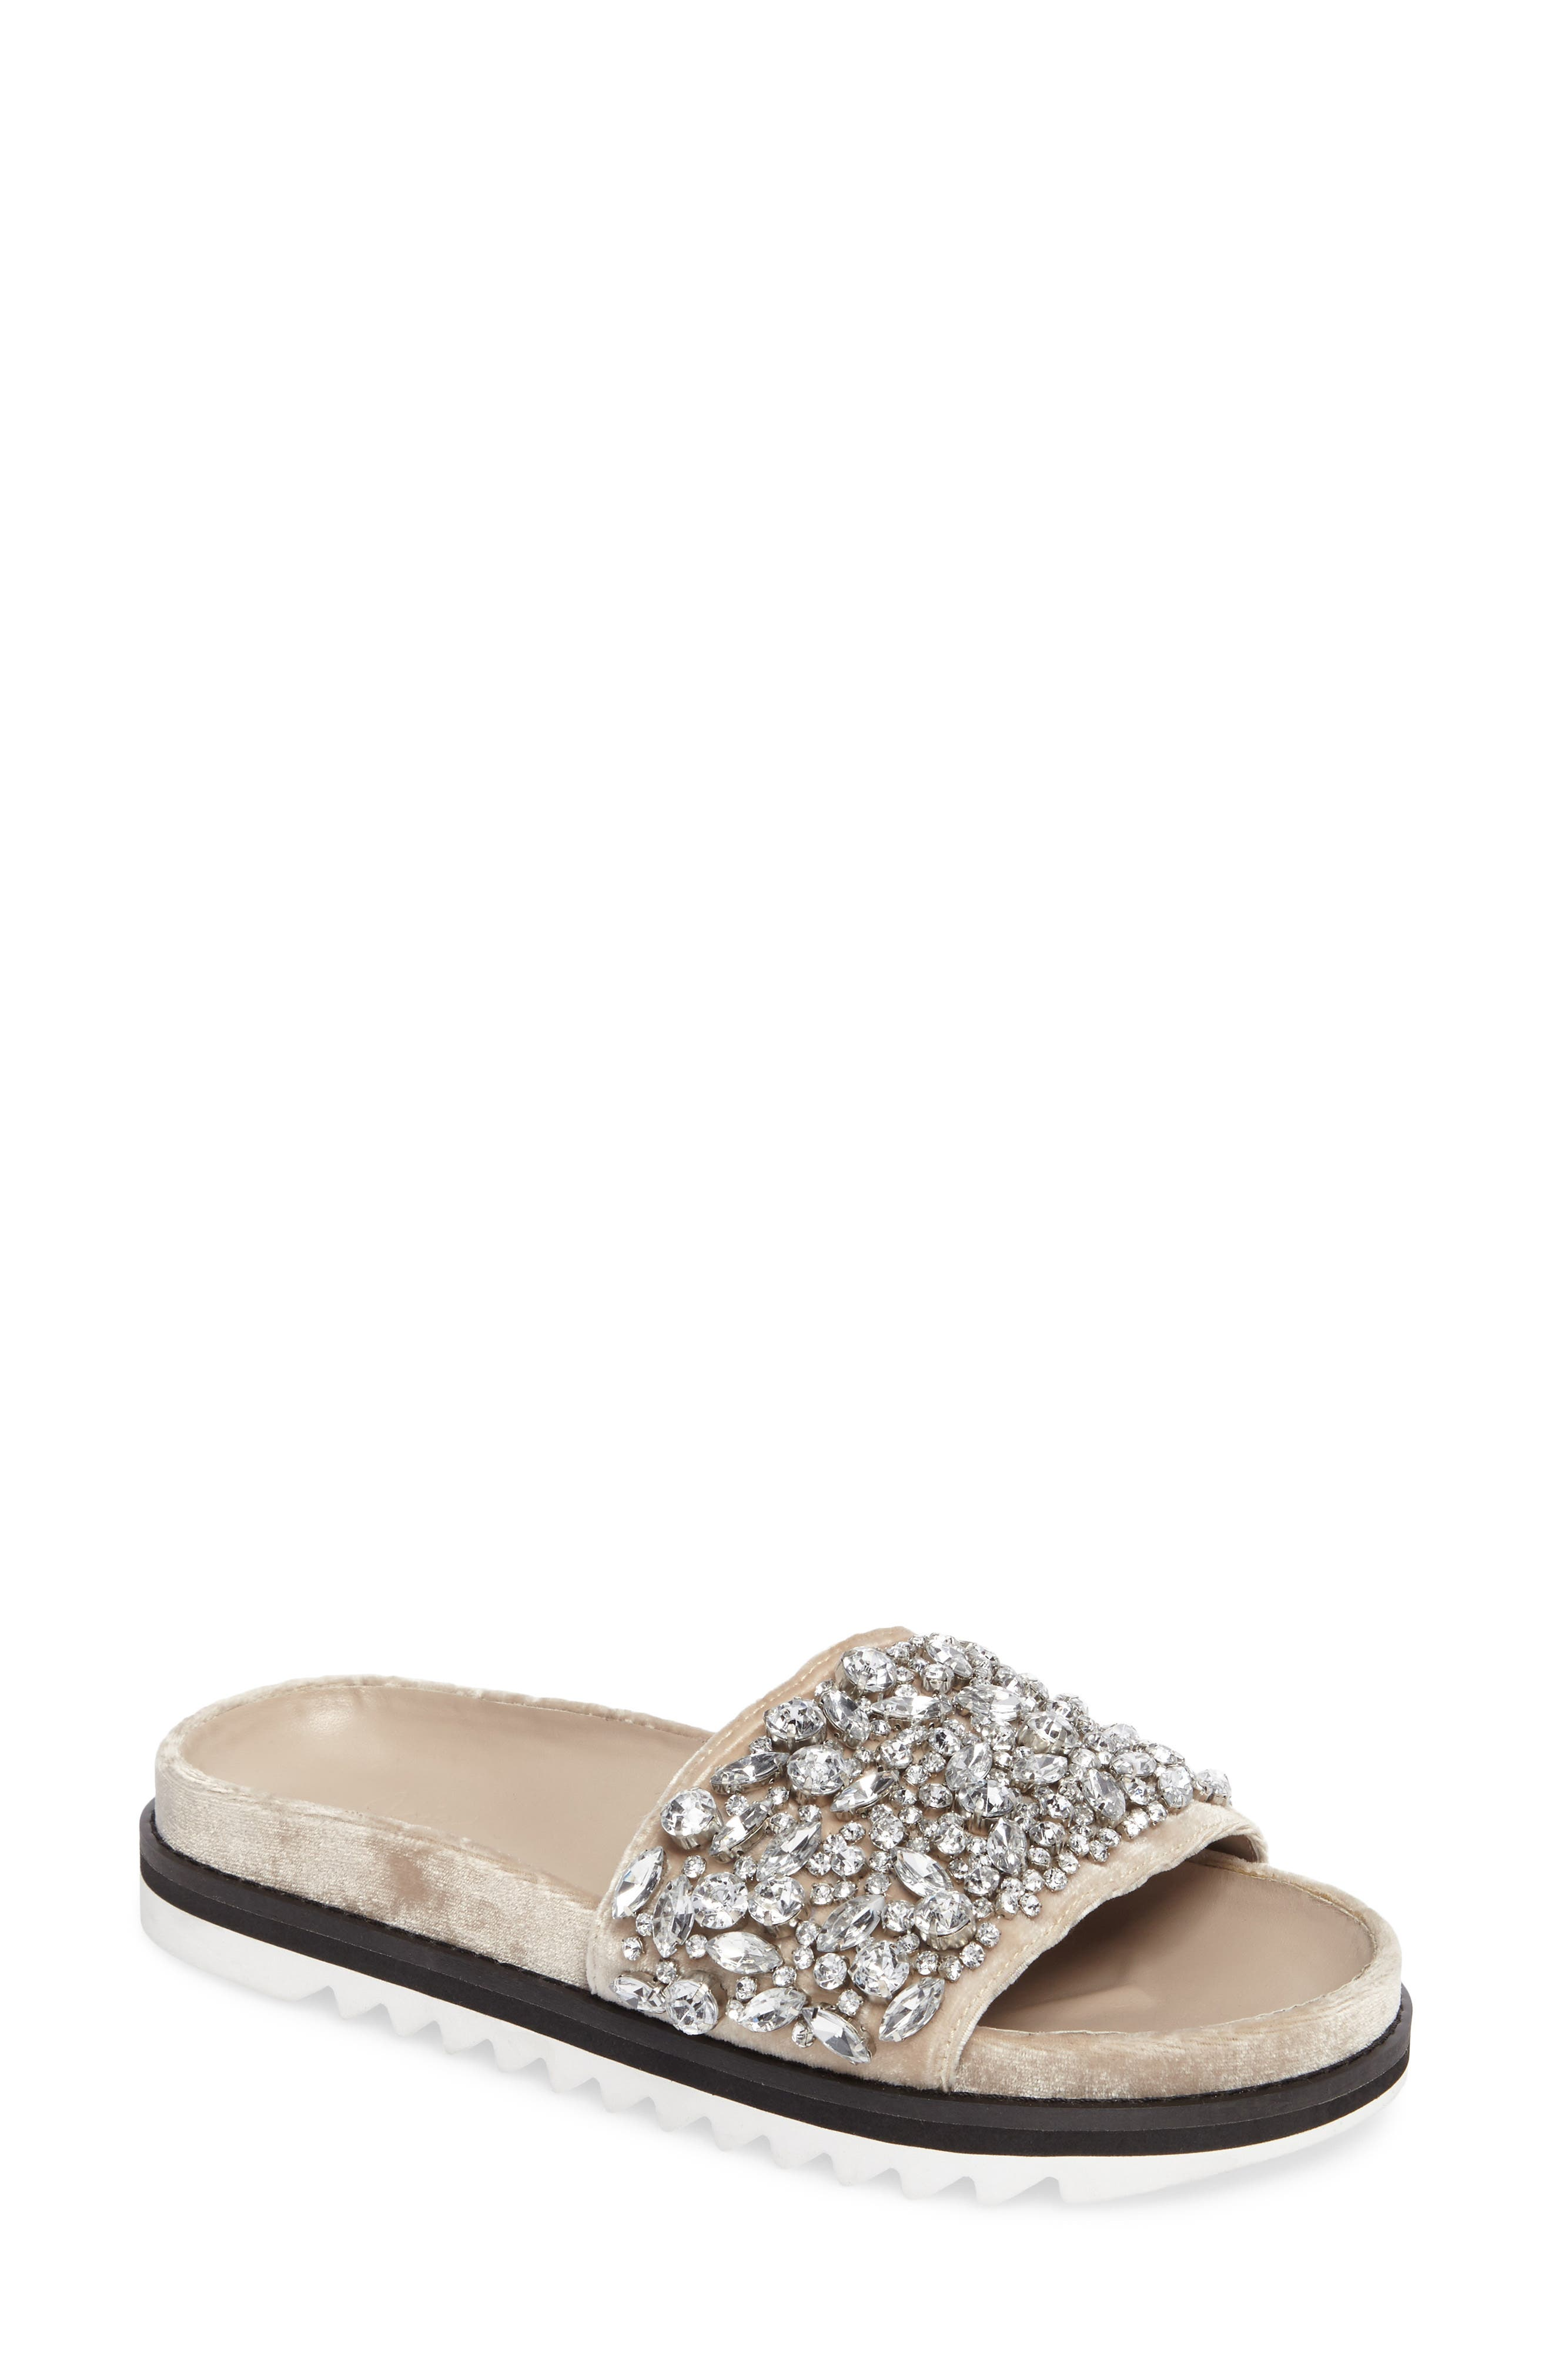 Women's Jacory Slide Sandal